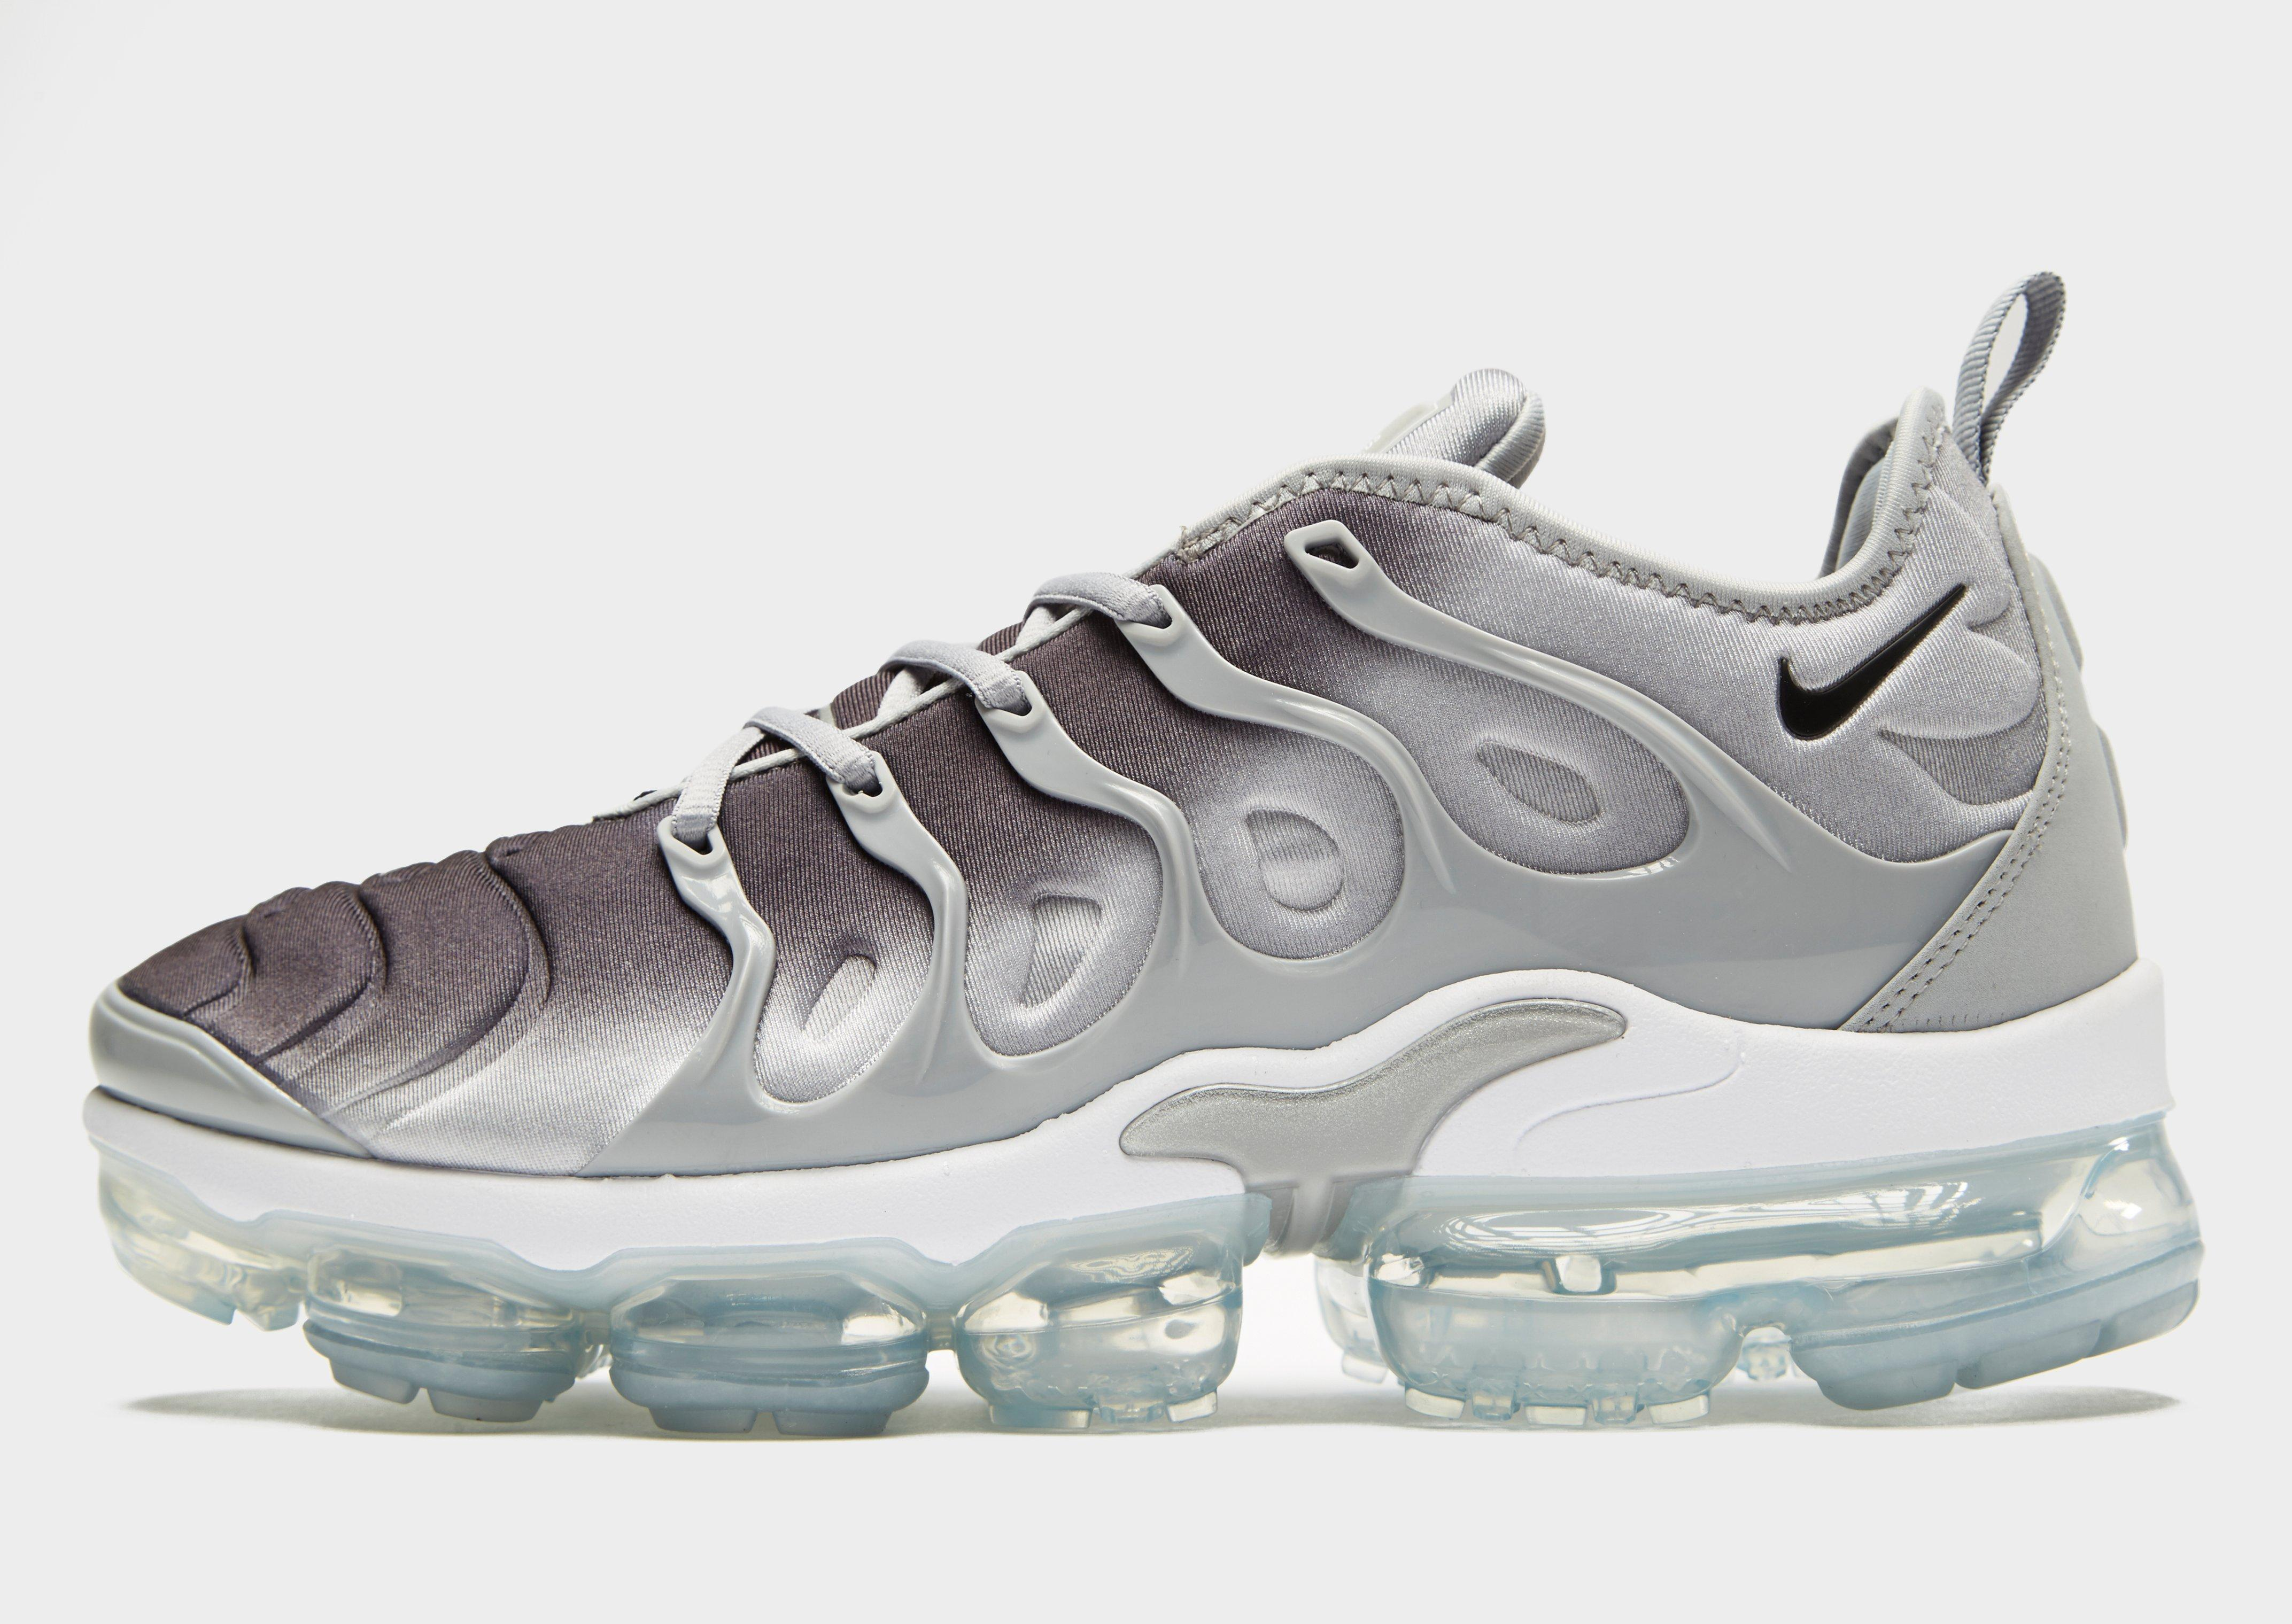 1bfce13ac08 Lyst - Nike Air Vapormax Plus in Gray for Men